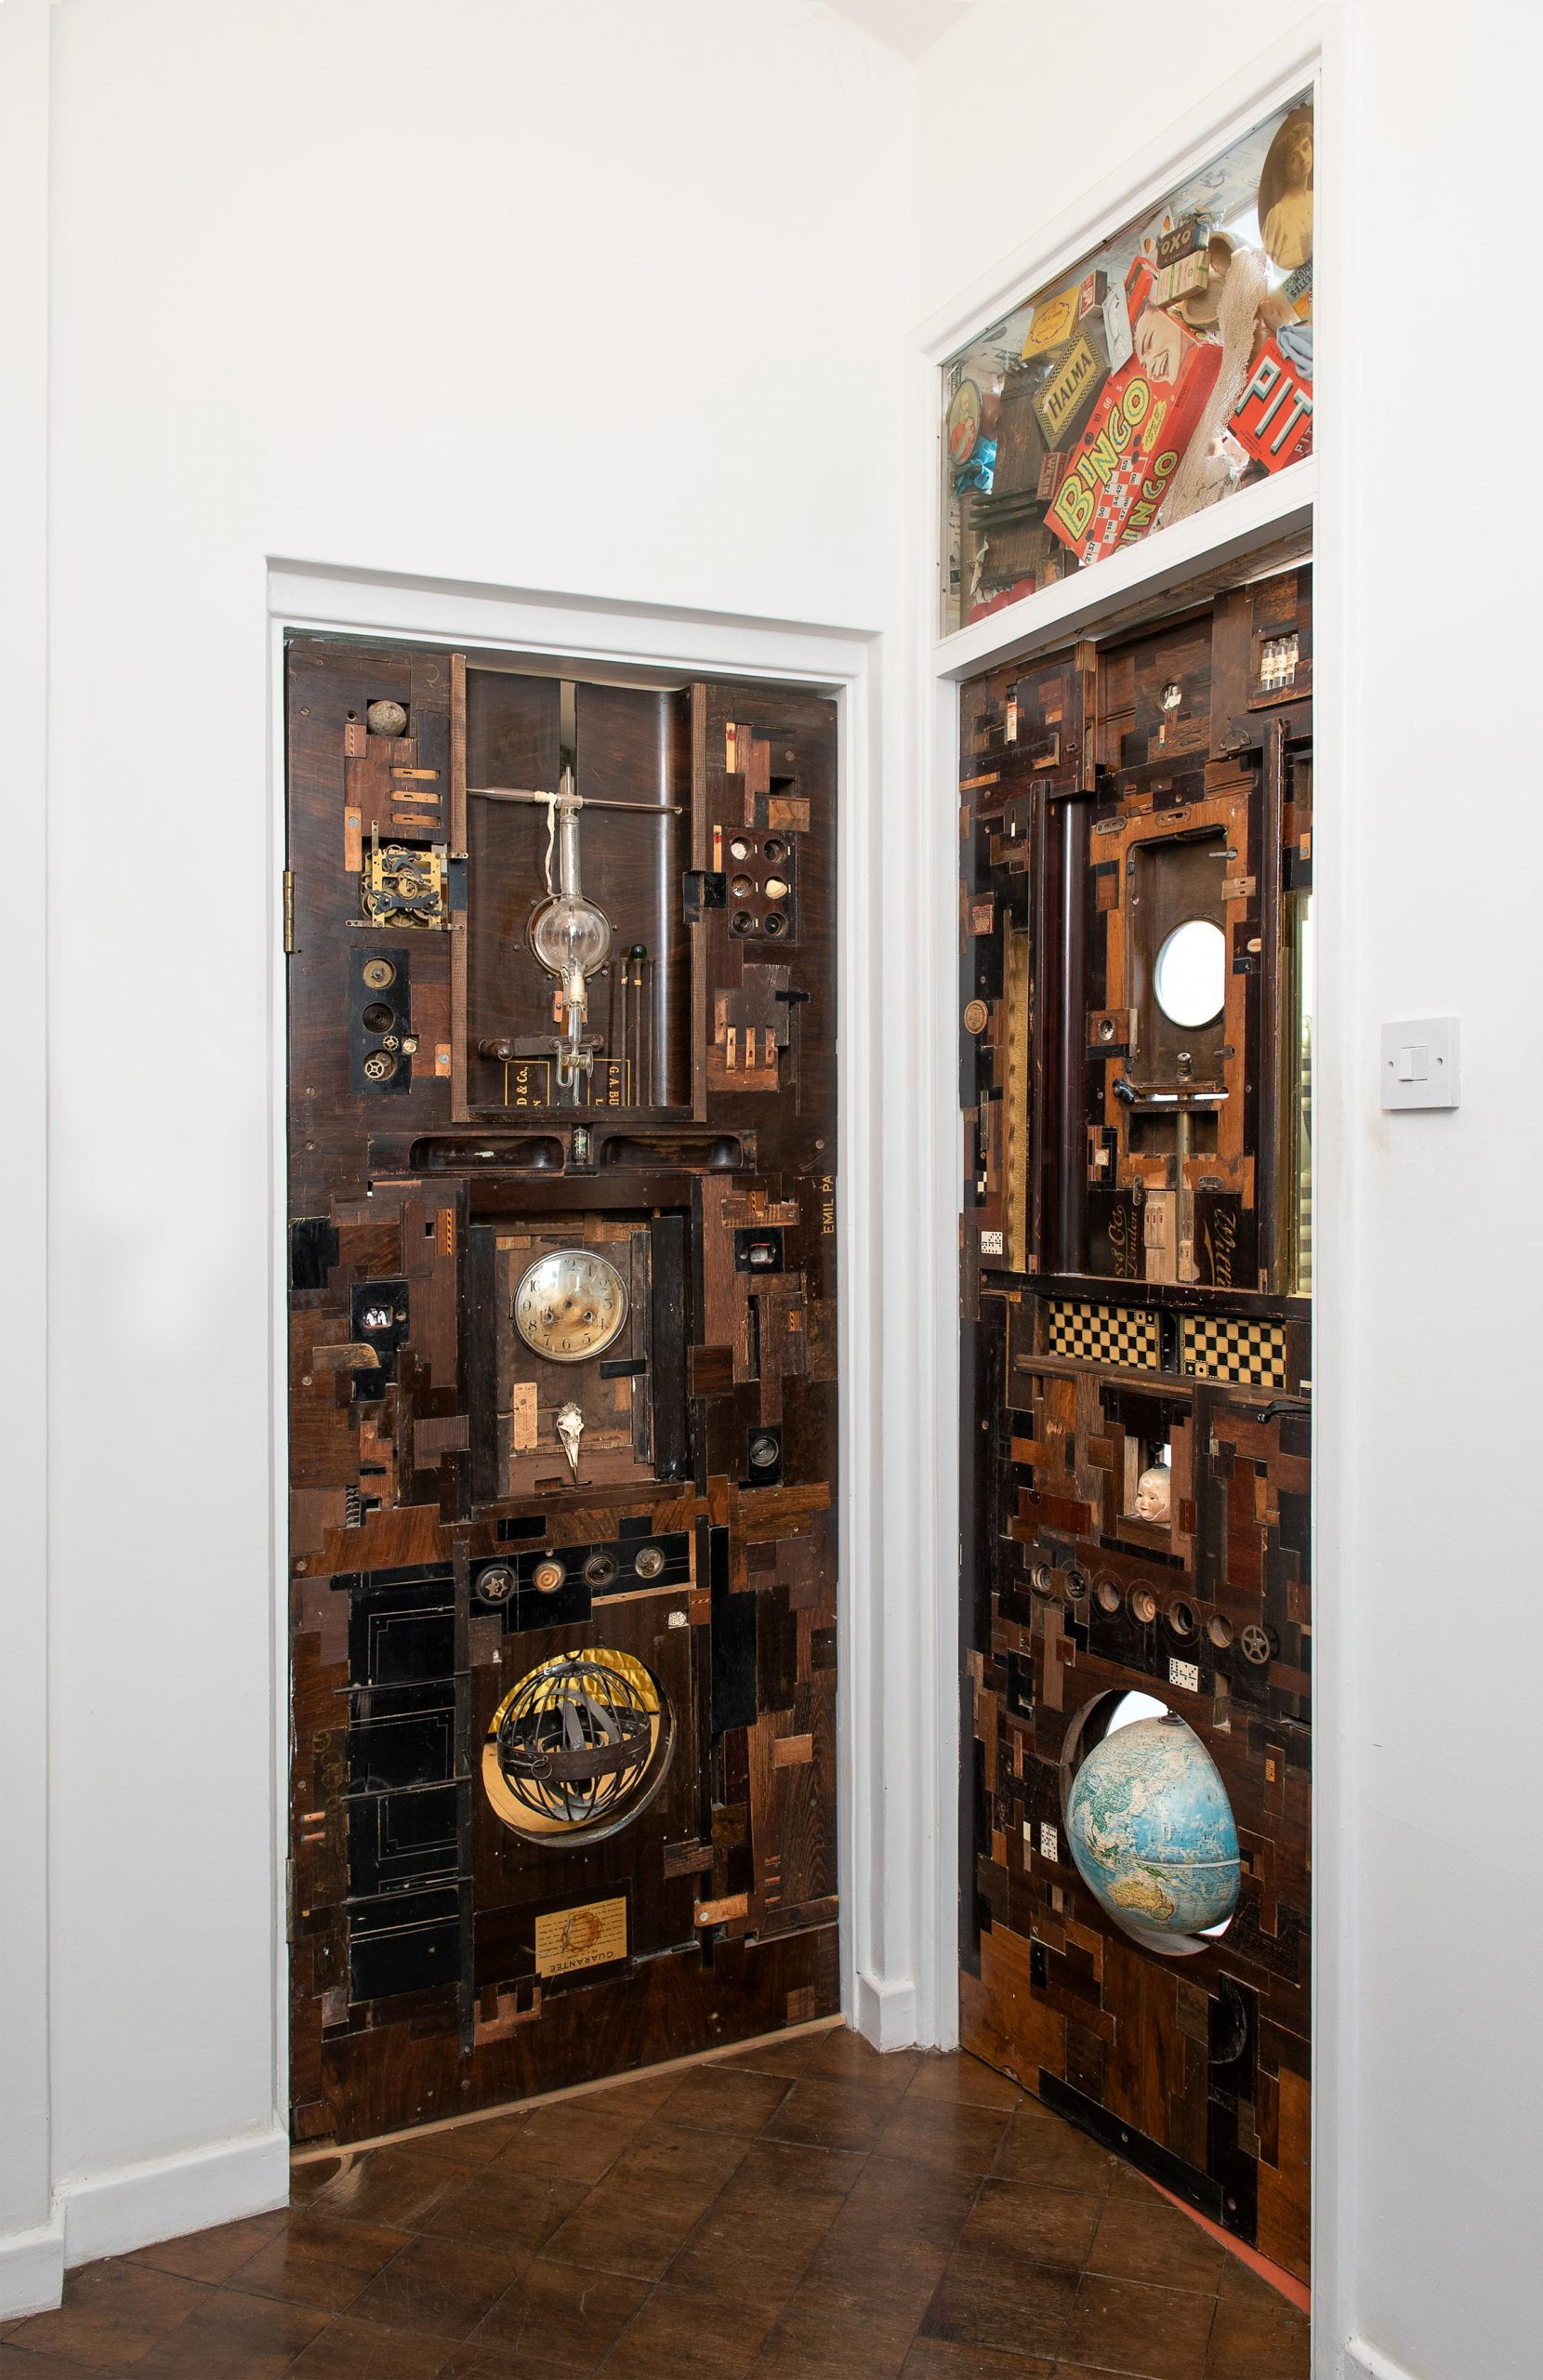 Everyday objects in contemporary art